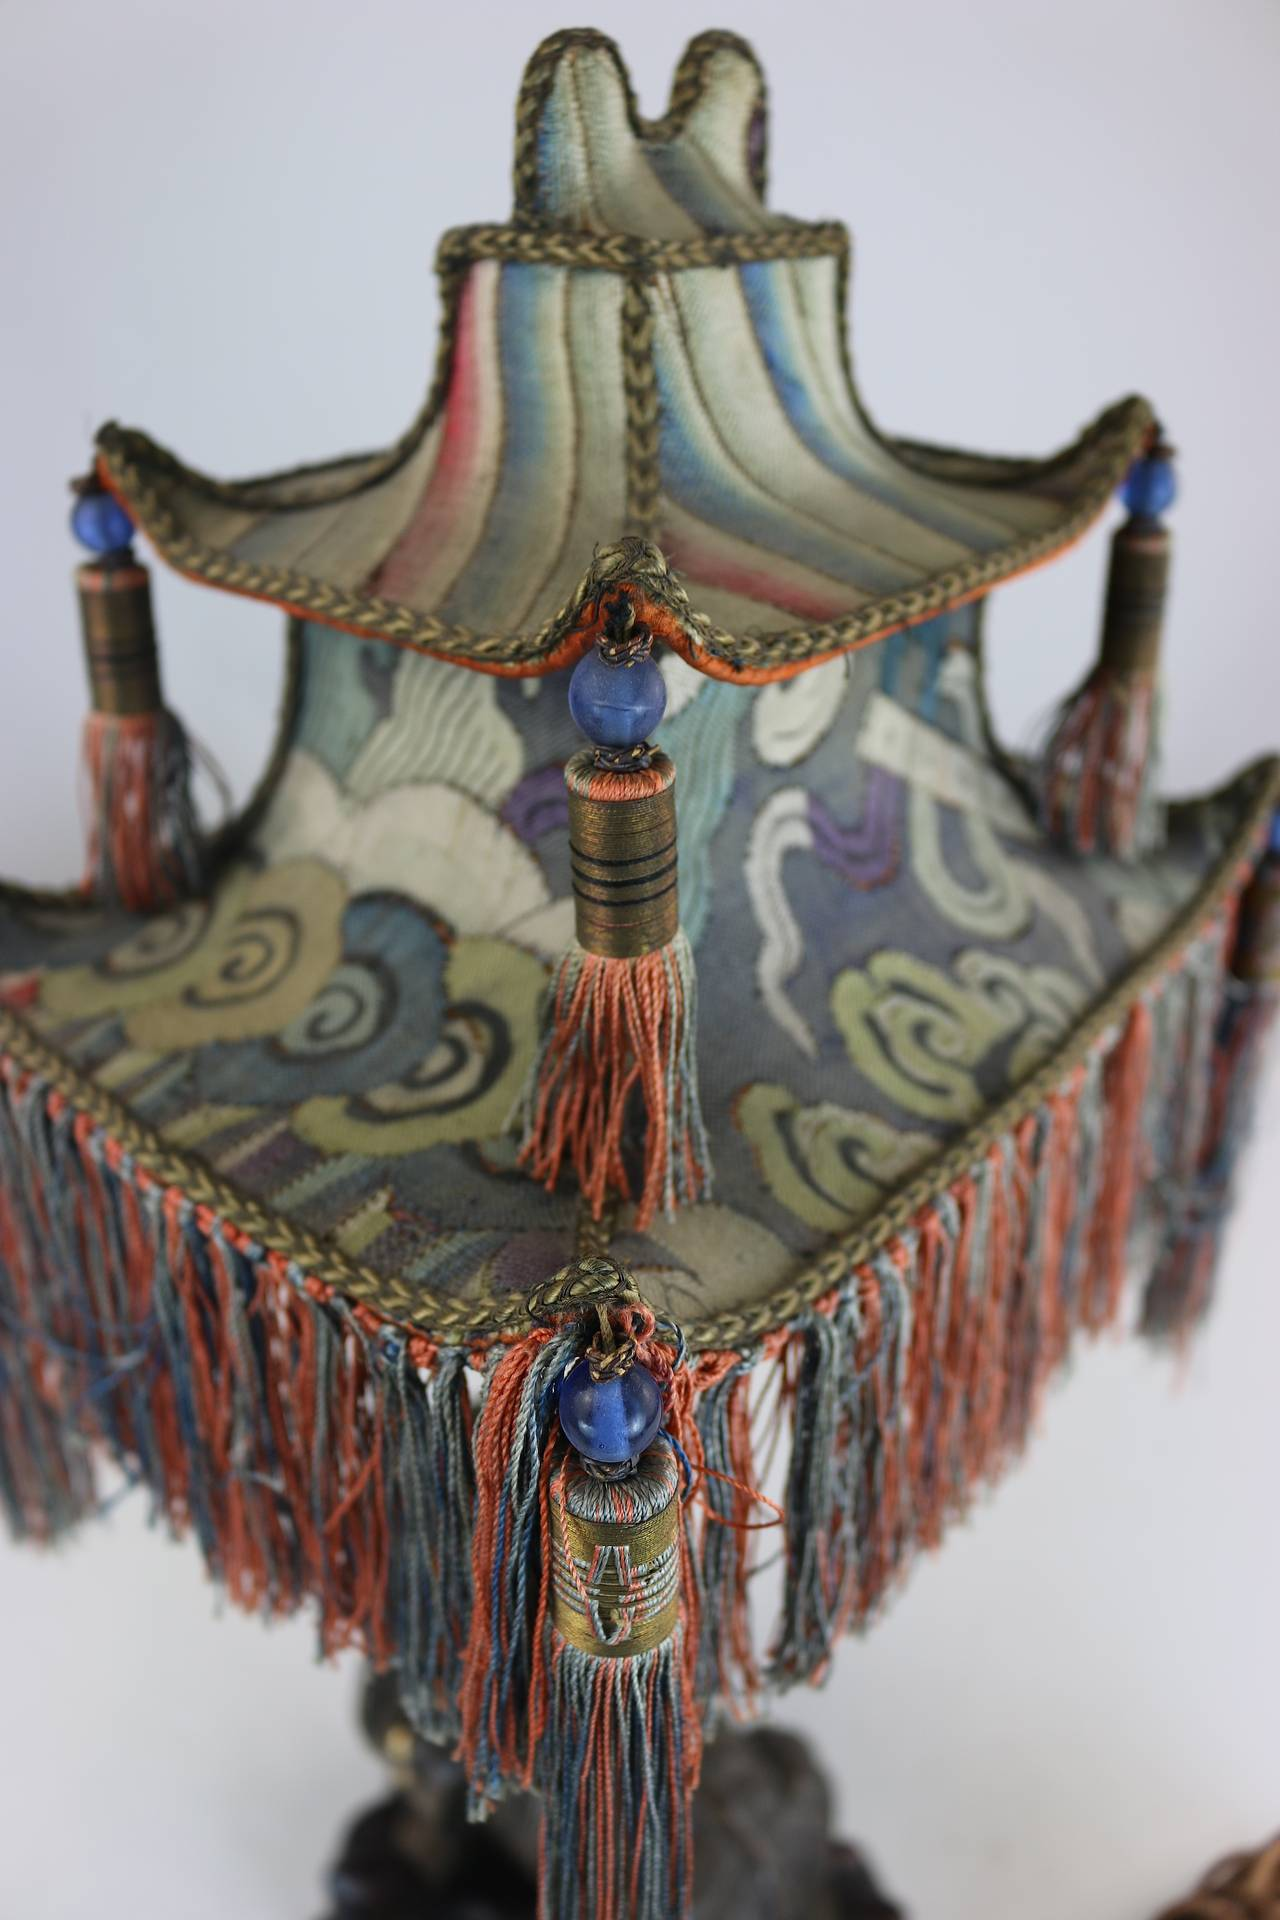 Rare Exotic 1920s Chinoiserie Lamp of Tasseled Pagoda Shade with Foo Dog Base For Sale 3